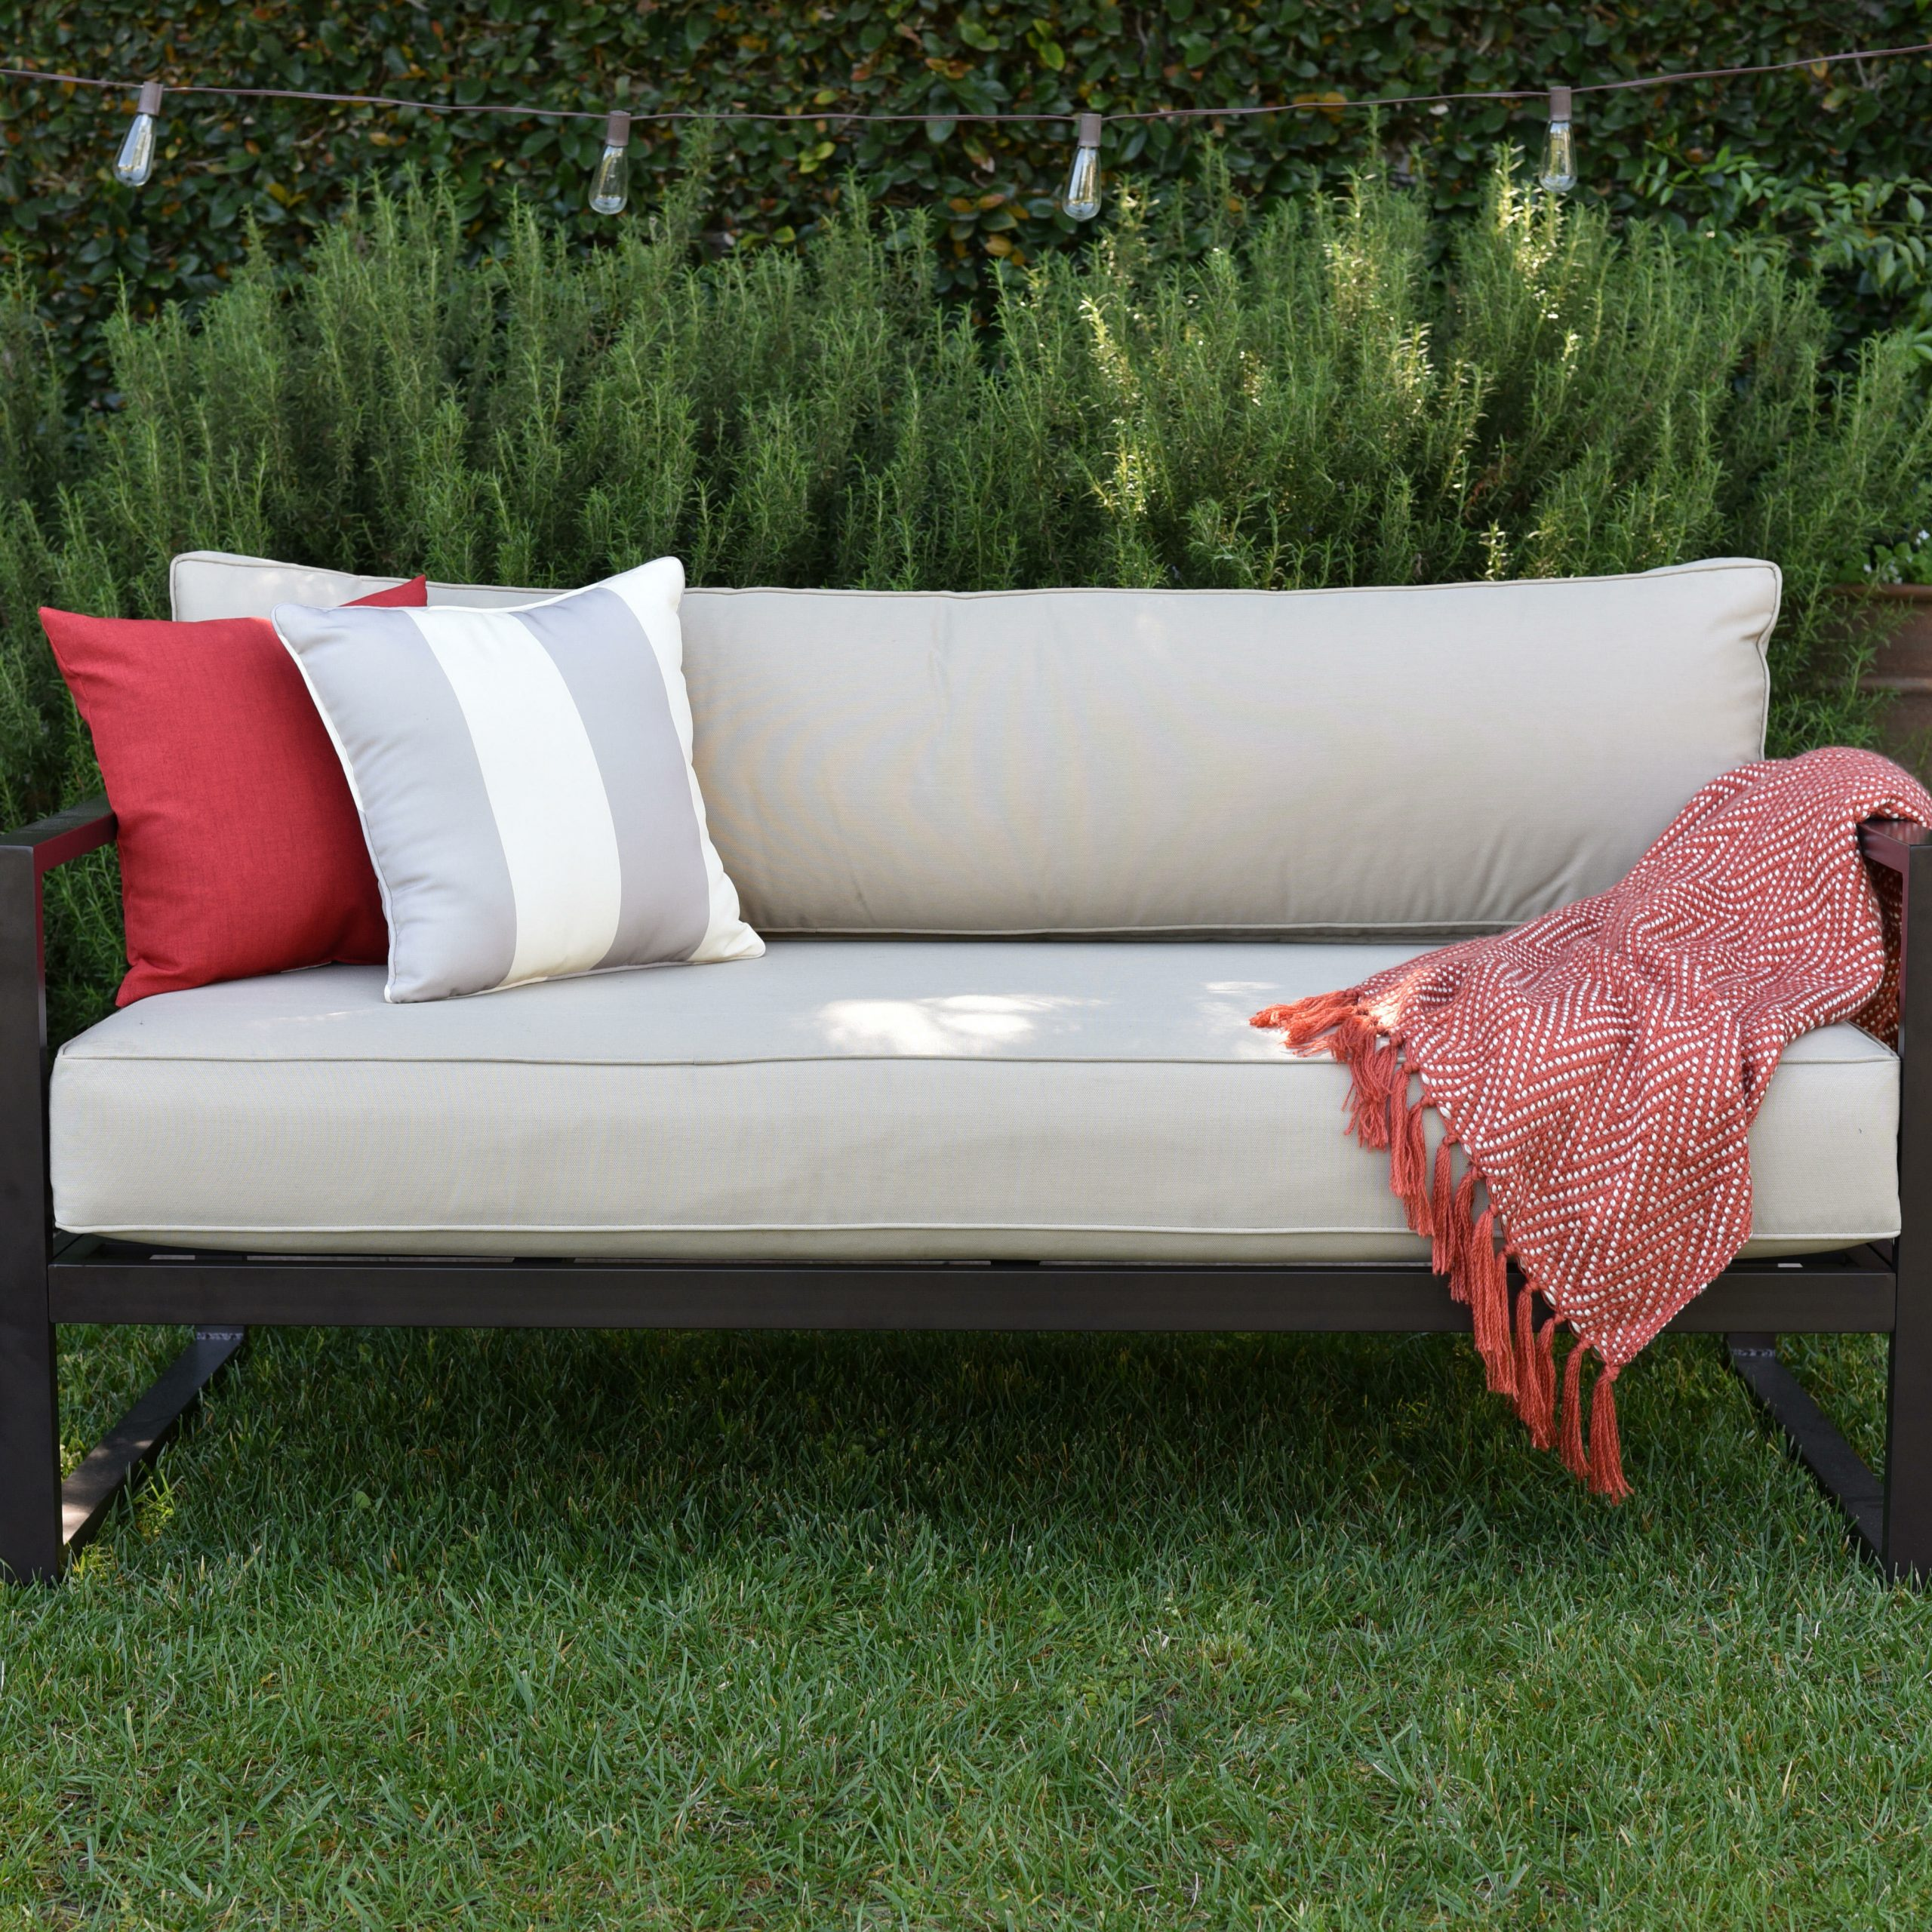 Catalina Outdoor Right Arm Sectional Pieces With Cushions In Widely Used Catalina Outdoor Sofa With Cushions (View 7 of 25)